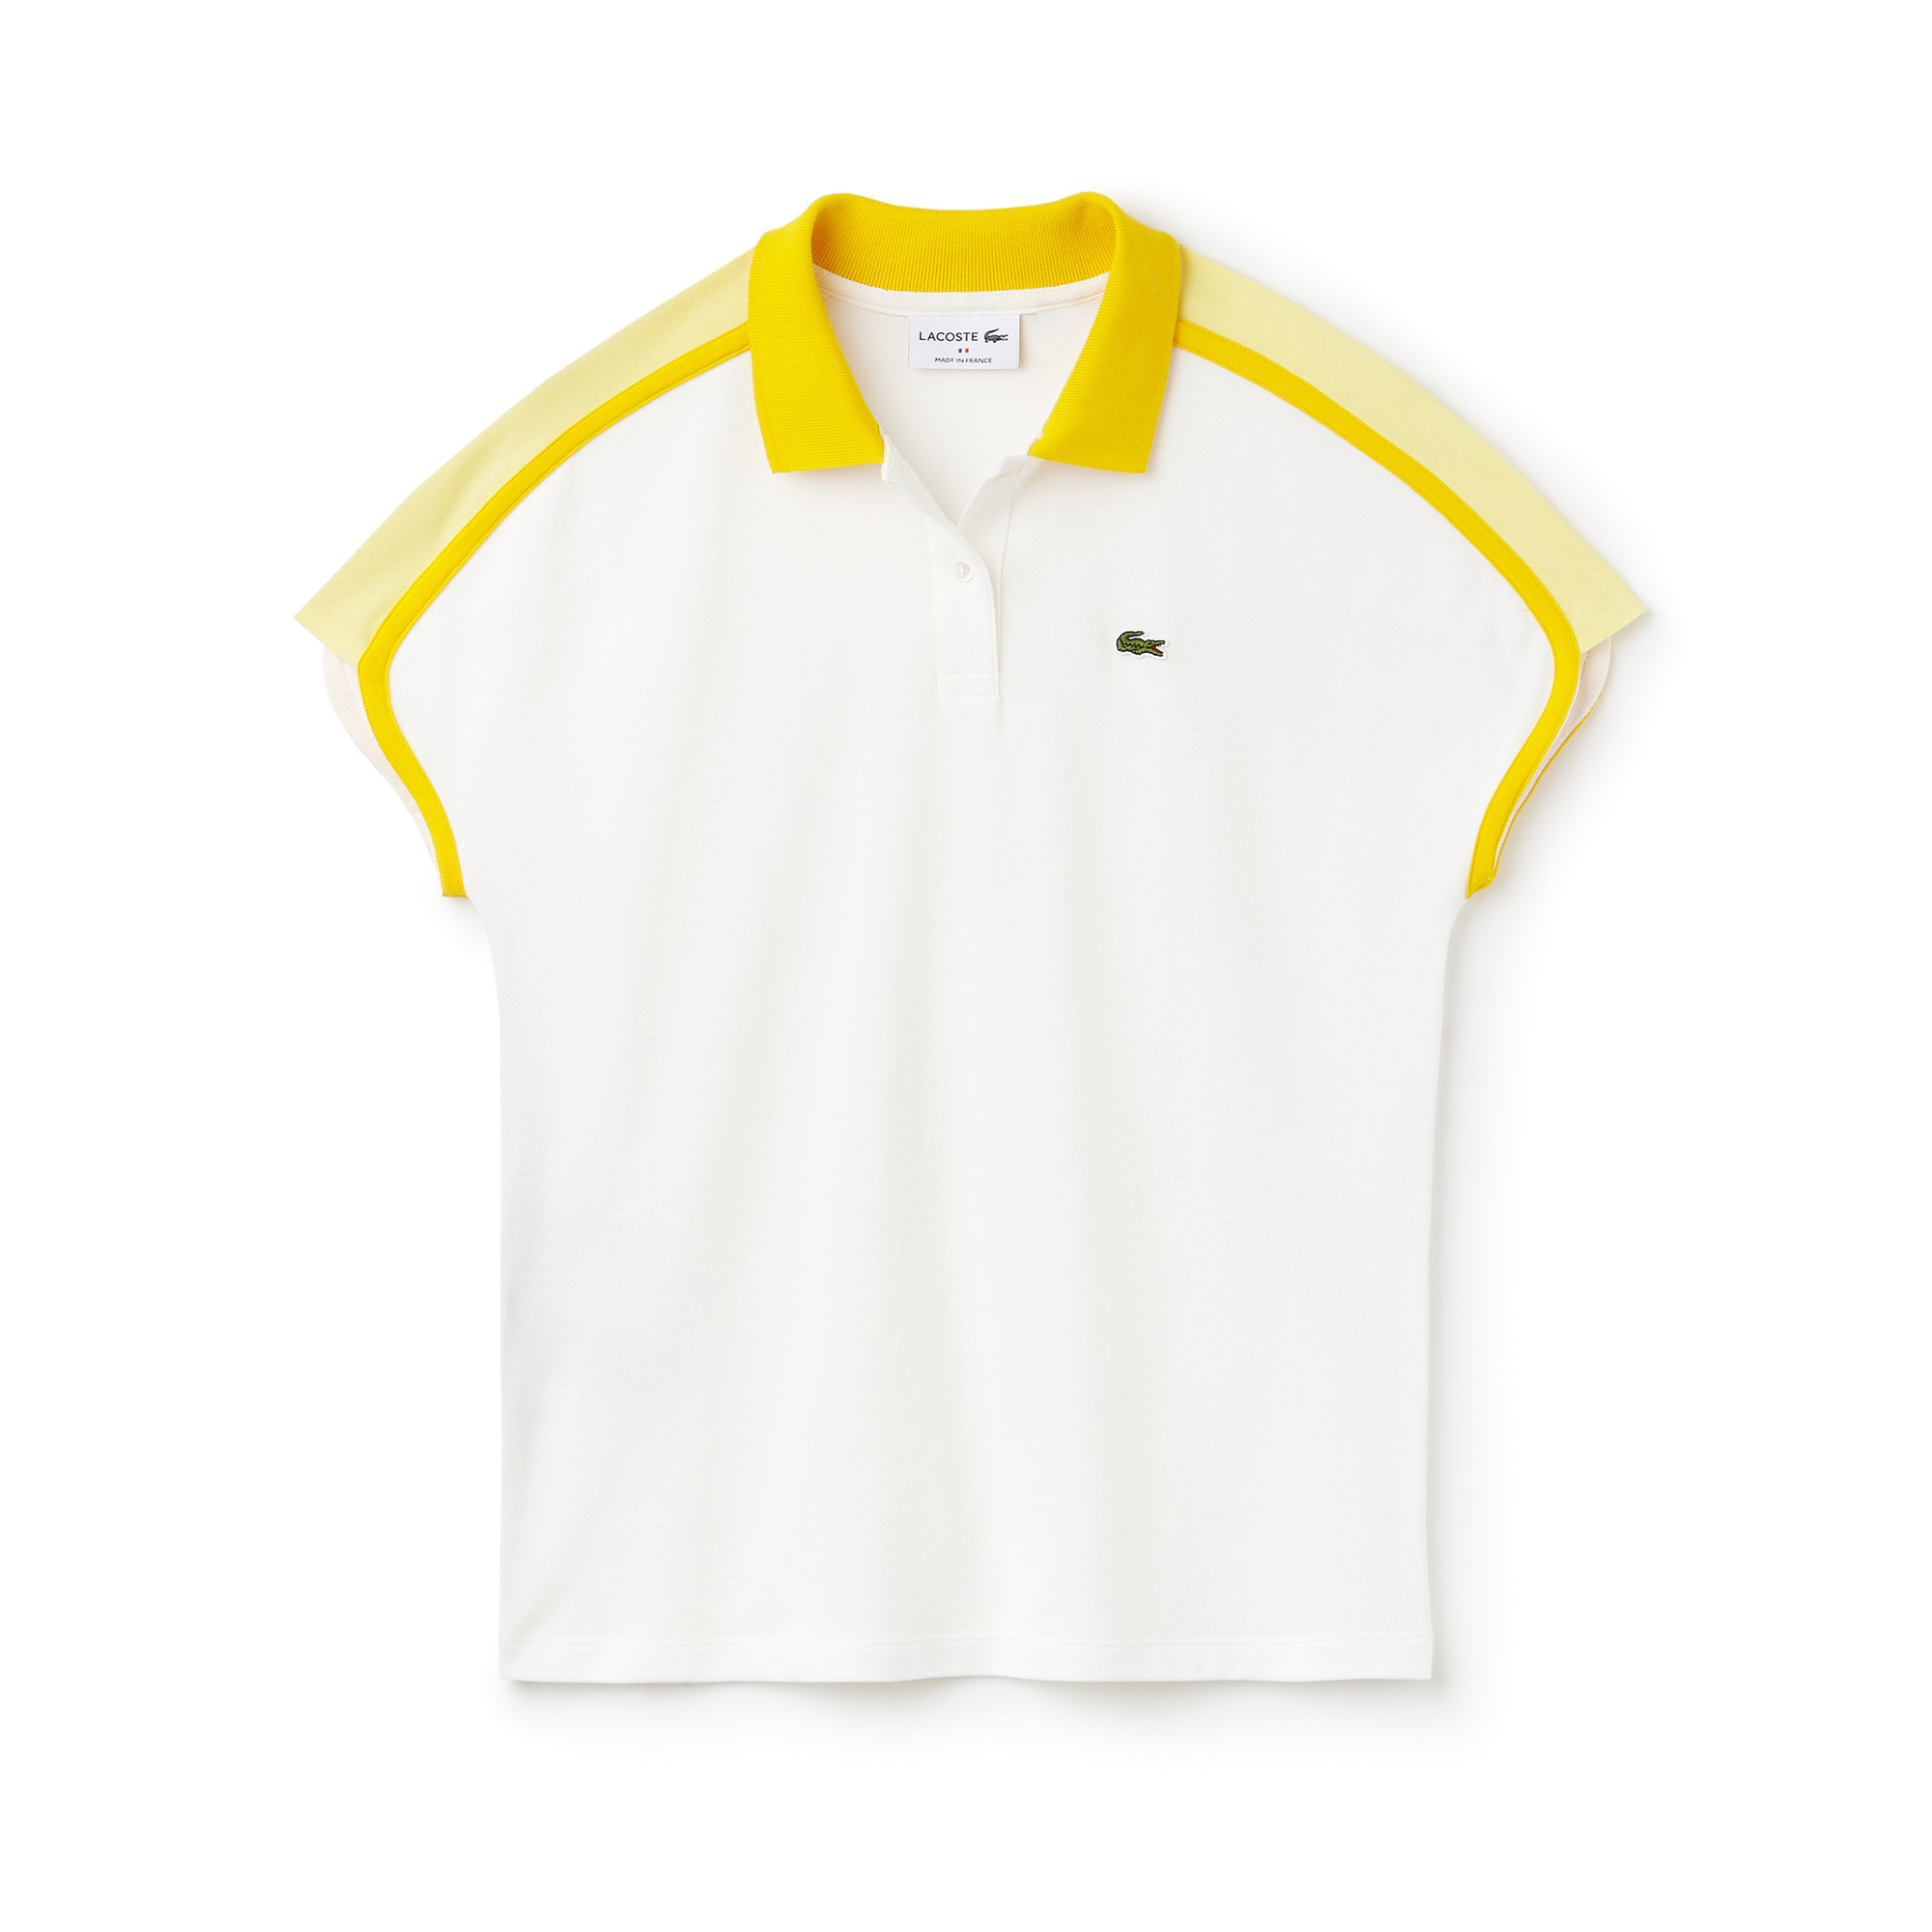 Women's Lacoste Made in France Colorblock Crepe Piqué Polo Shirt